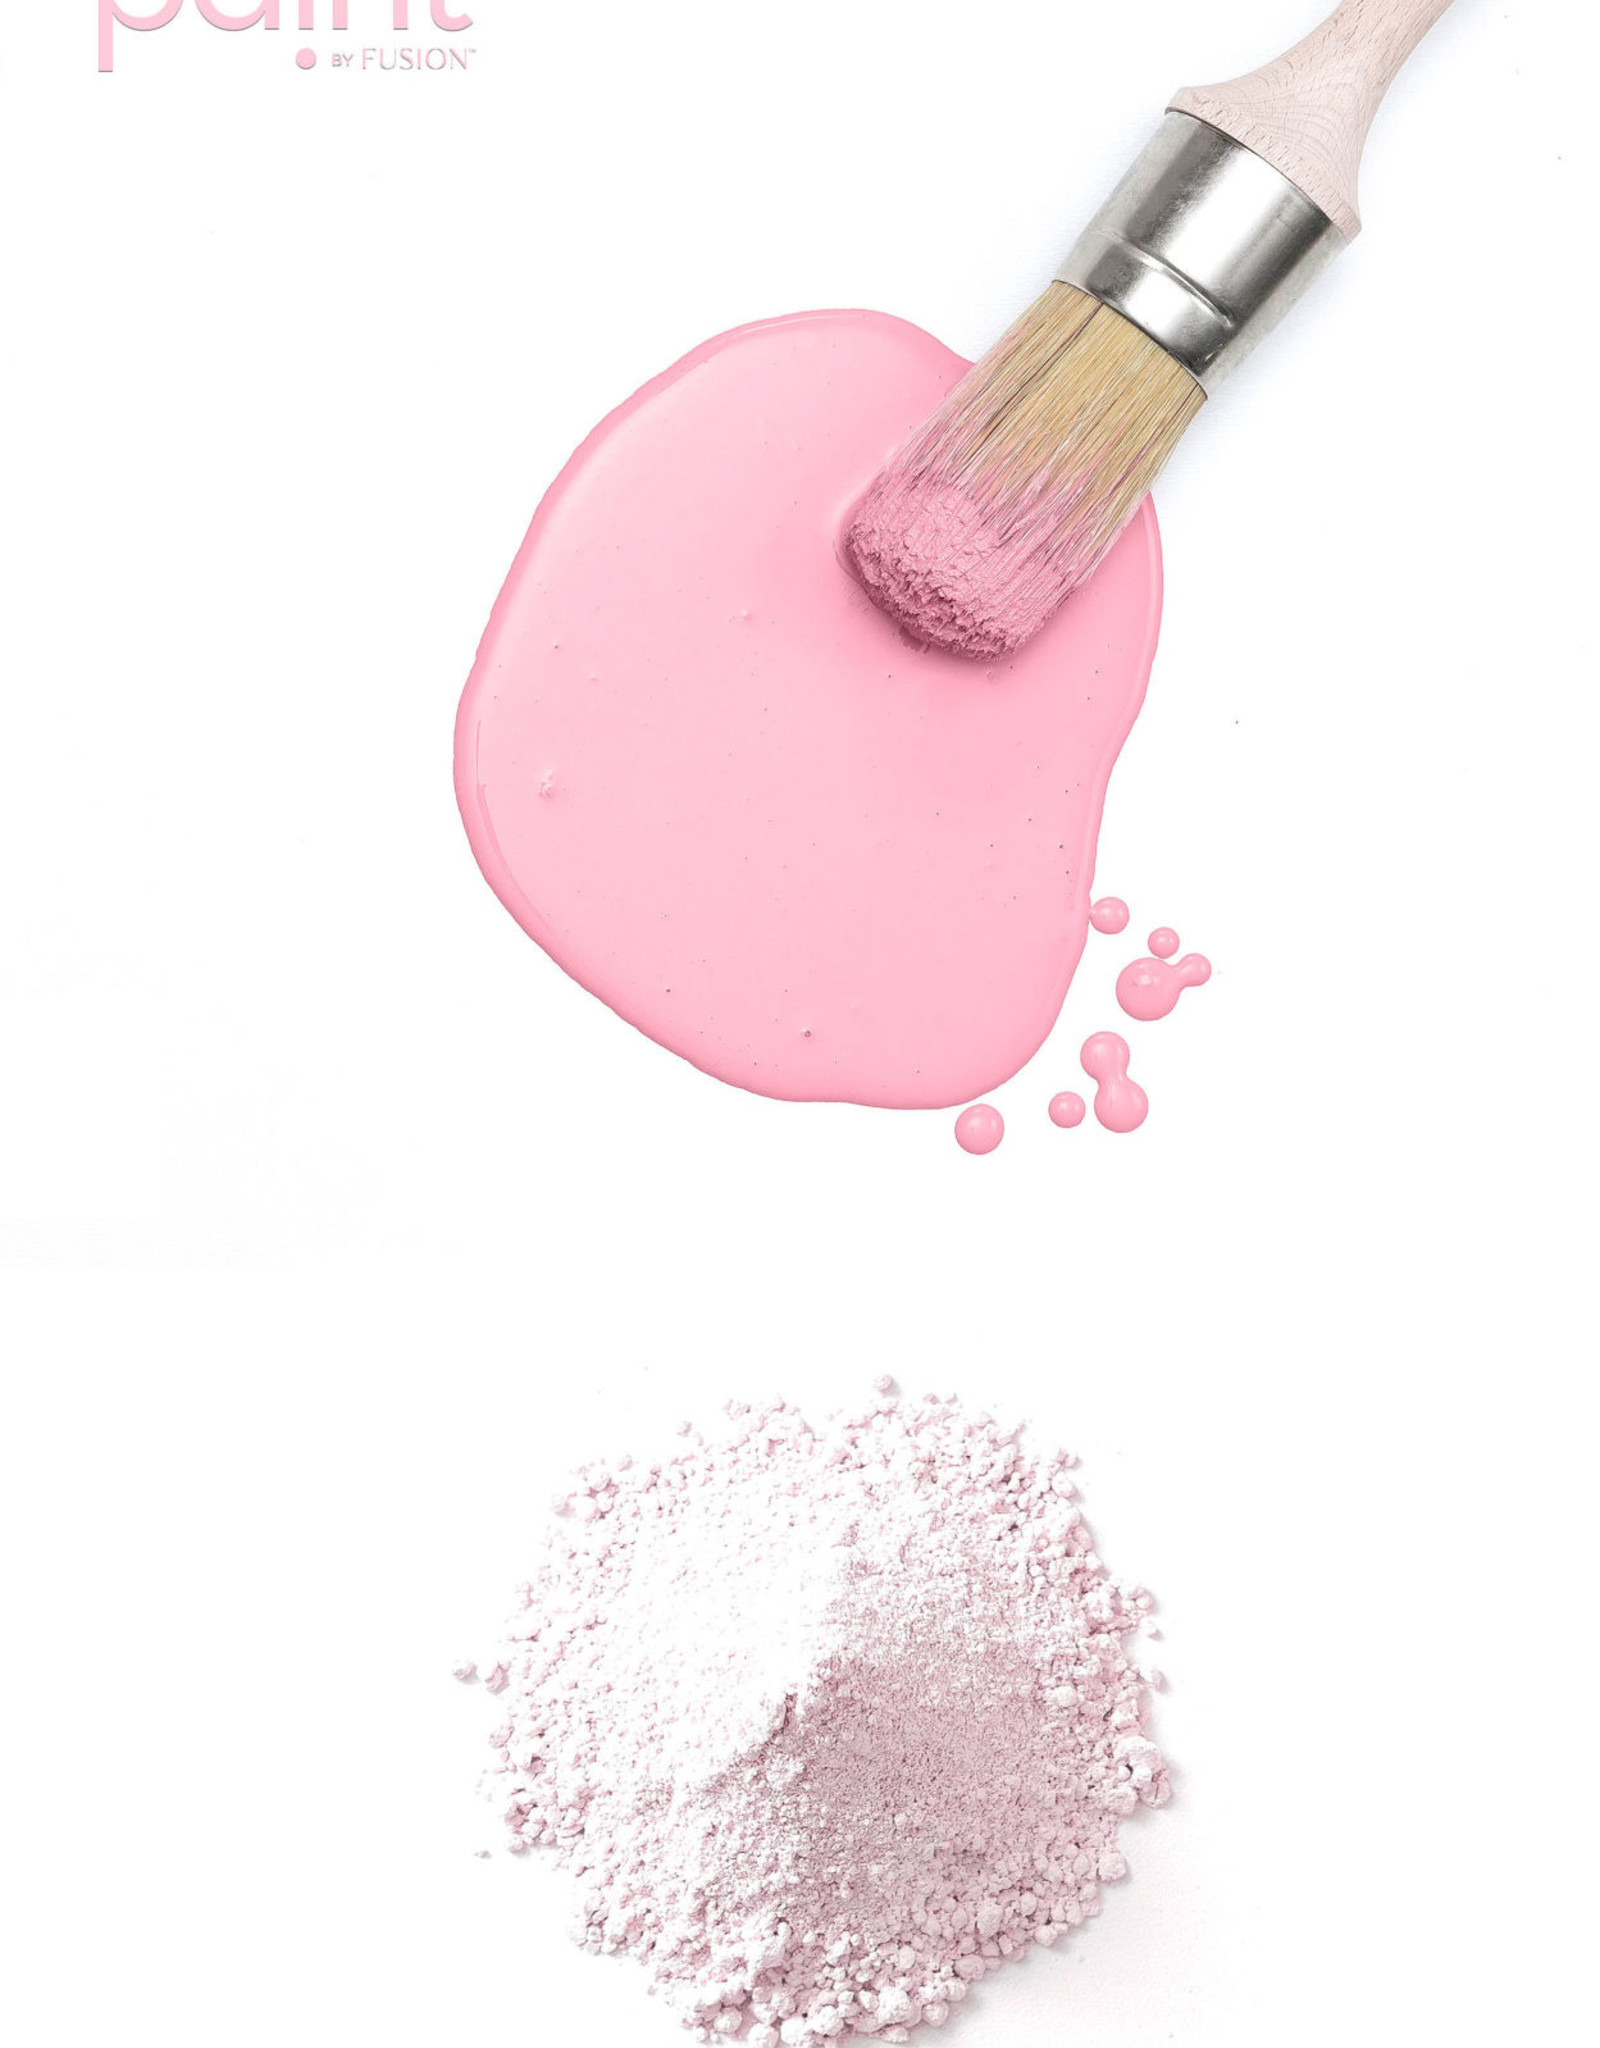 Fusion Mineral Paint Milk Paint 330g Palm Springs Pink